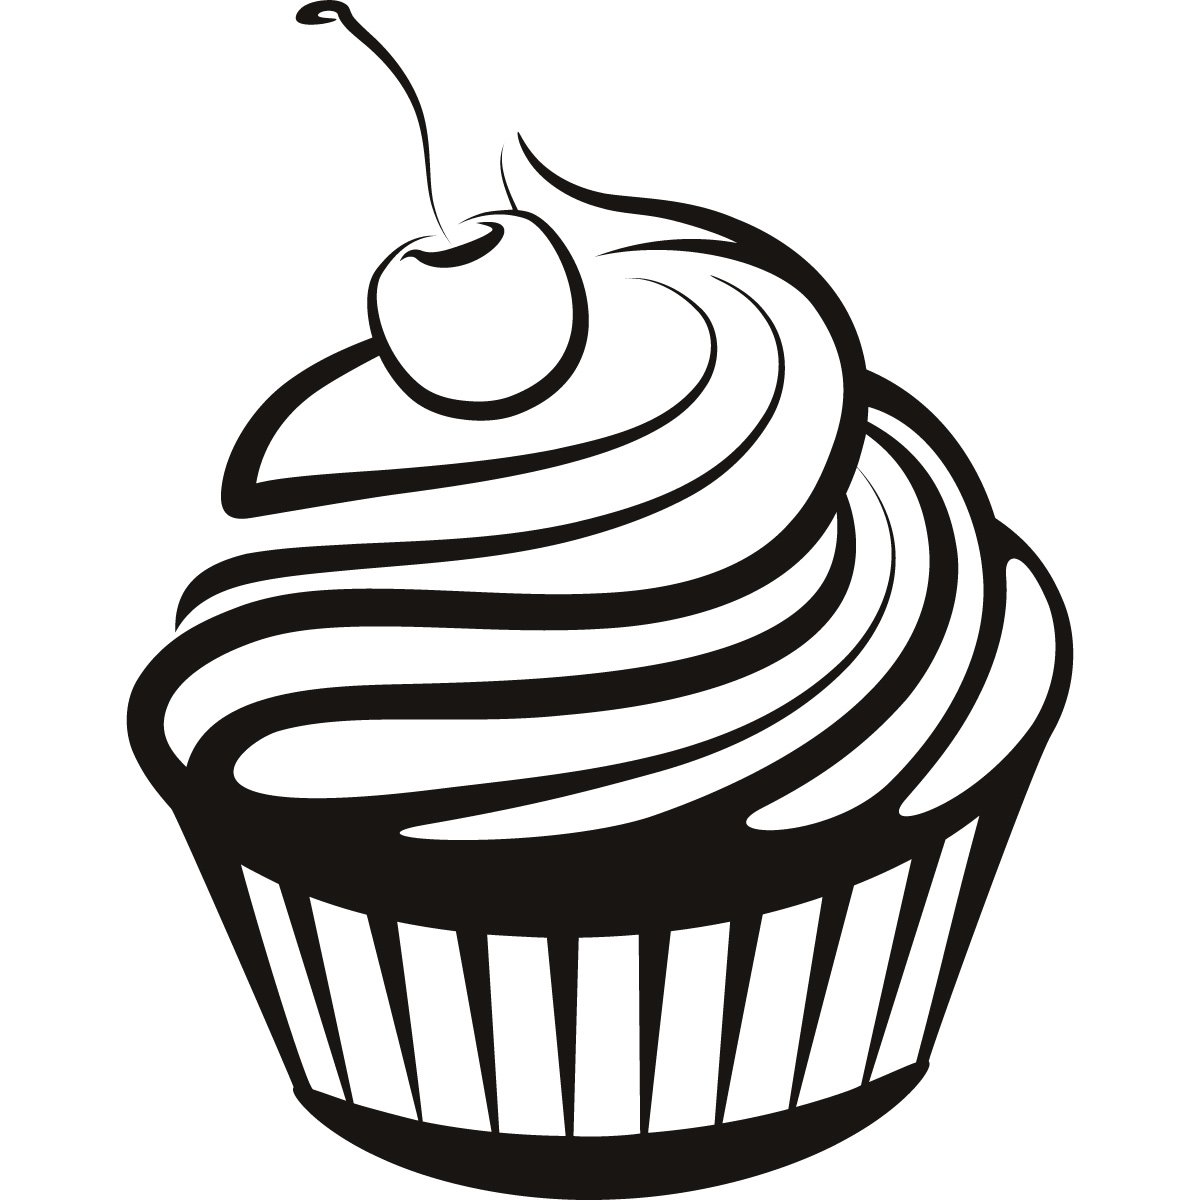 1200x1200 A Drawing Of A Cupcake Simple Cupcake Drawings Cupcake Cherry On